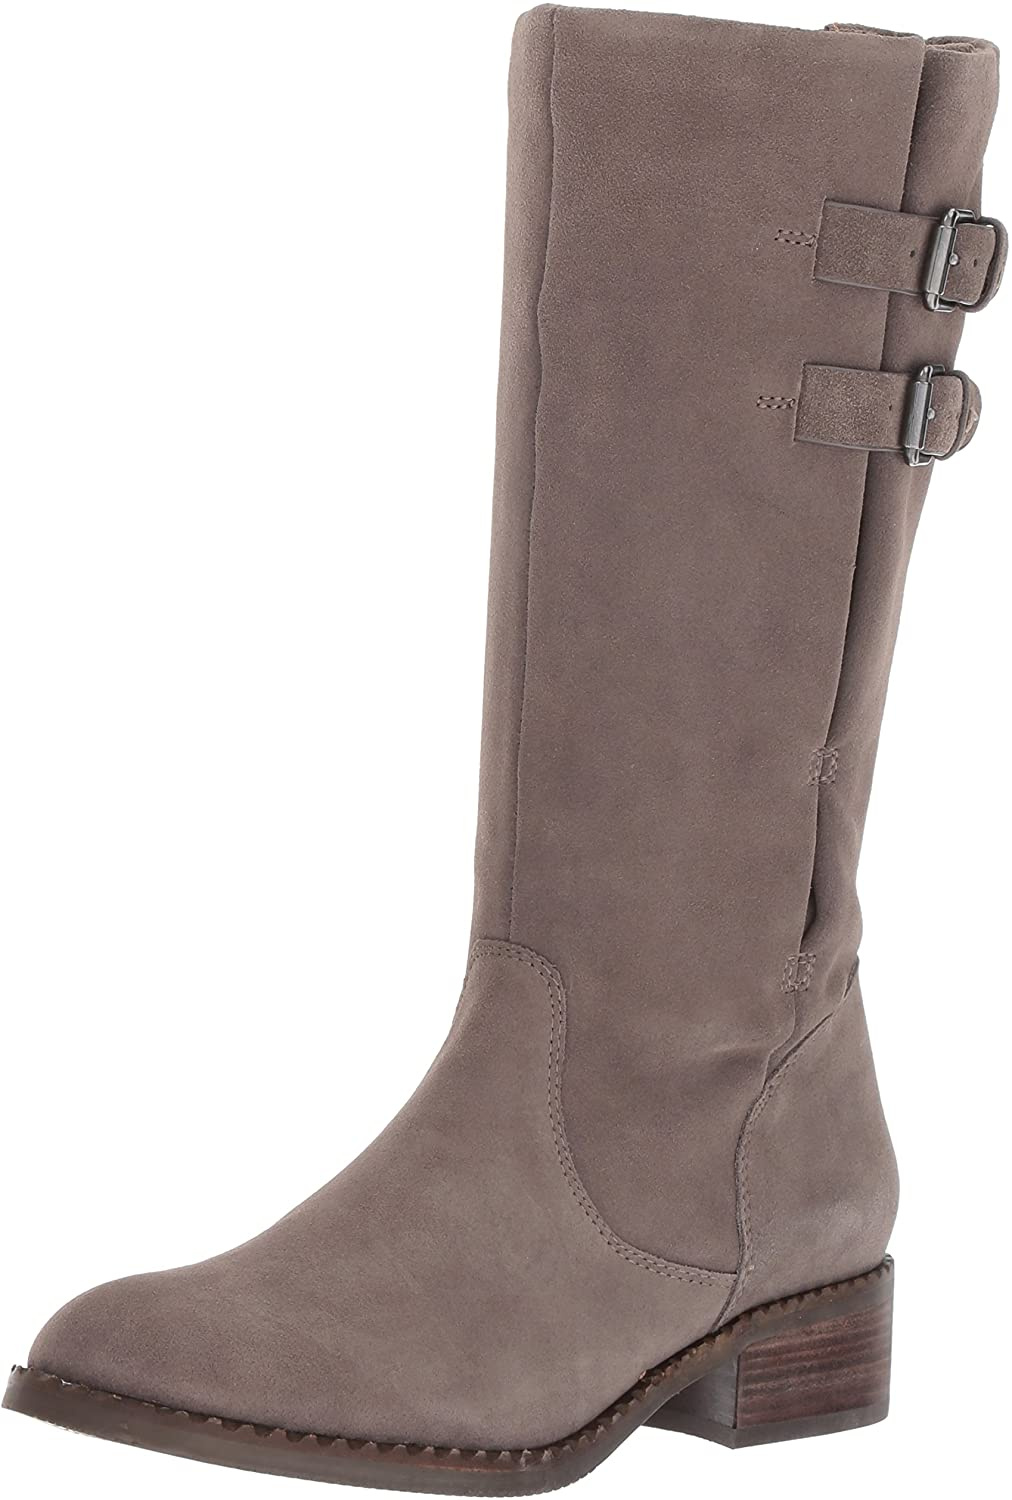 Gentle Souls Women's Brian Mid-Calf Boot with Buckle Detail Angled Topline Suede Harness